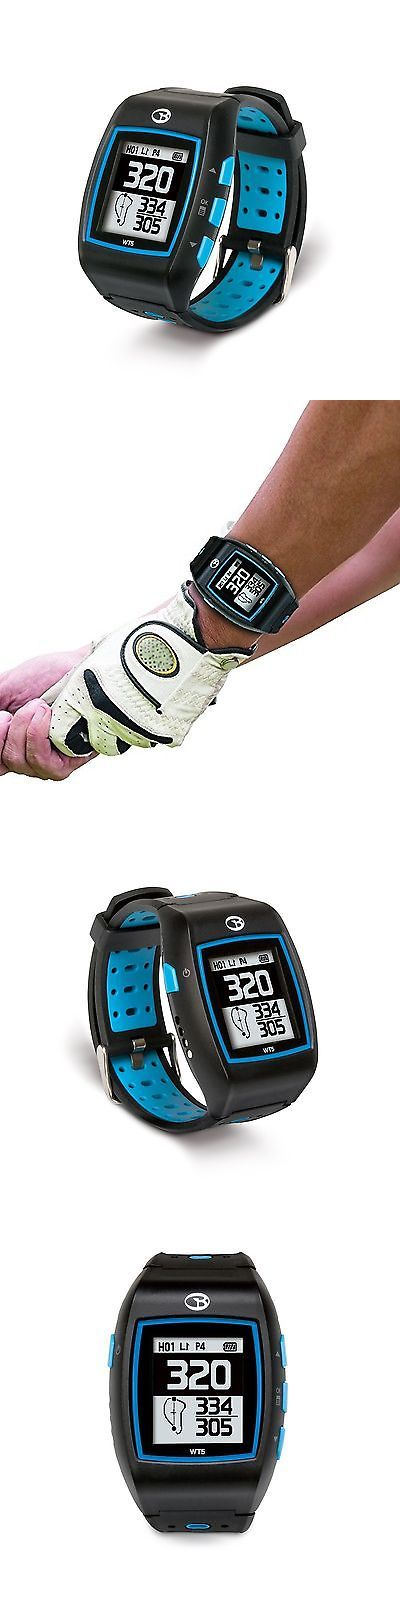 Rangefinders and Scopes 111289: Golfbuddy Wt5 Golf Gps Watch Black/Blue New BUY IT NOW ONLY: $117.04